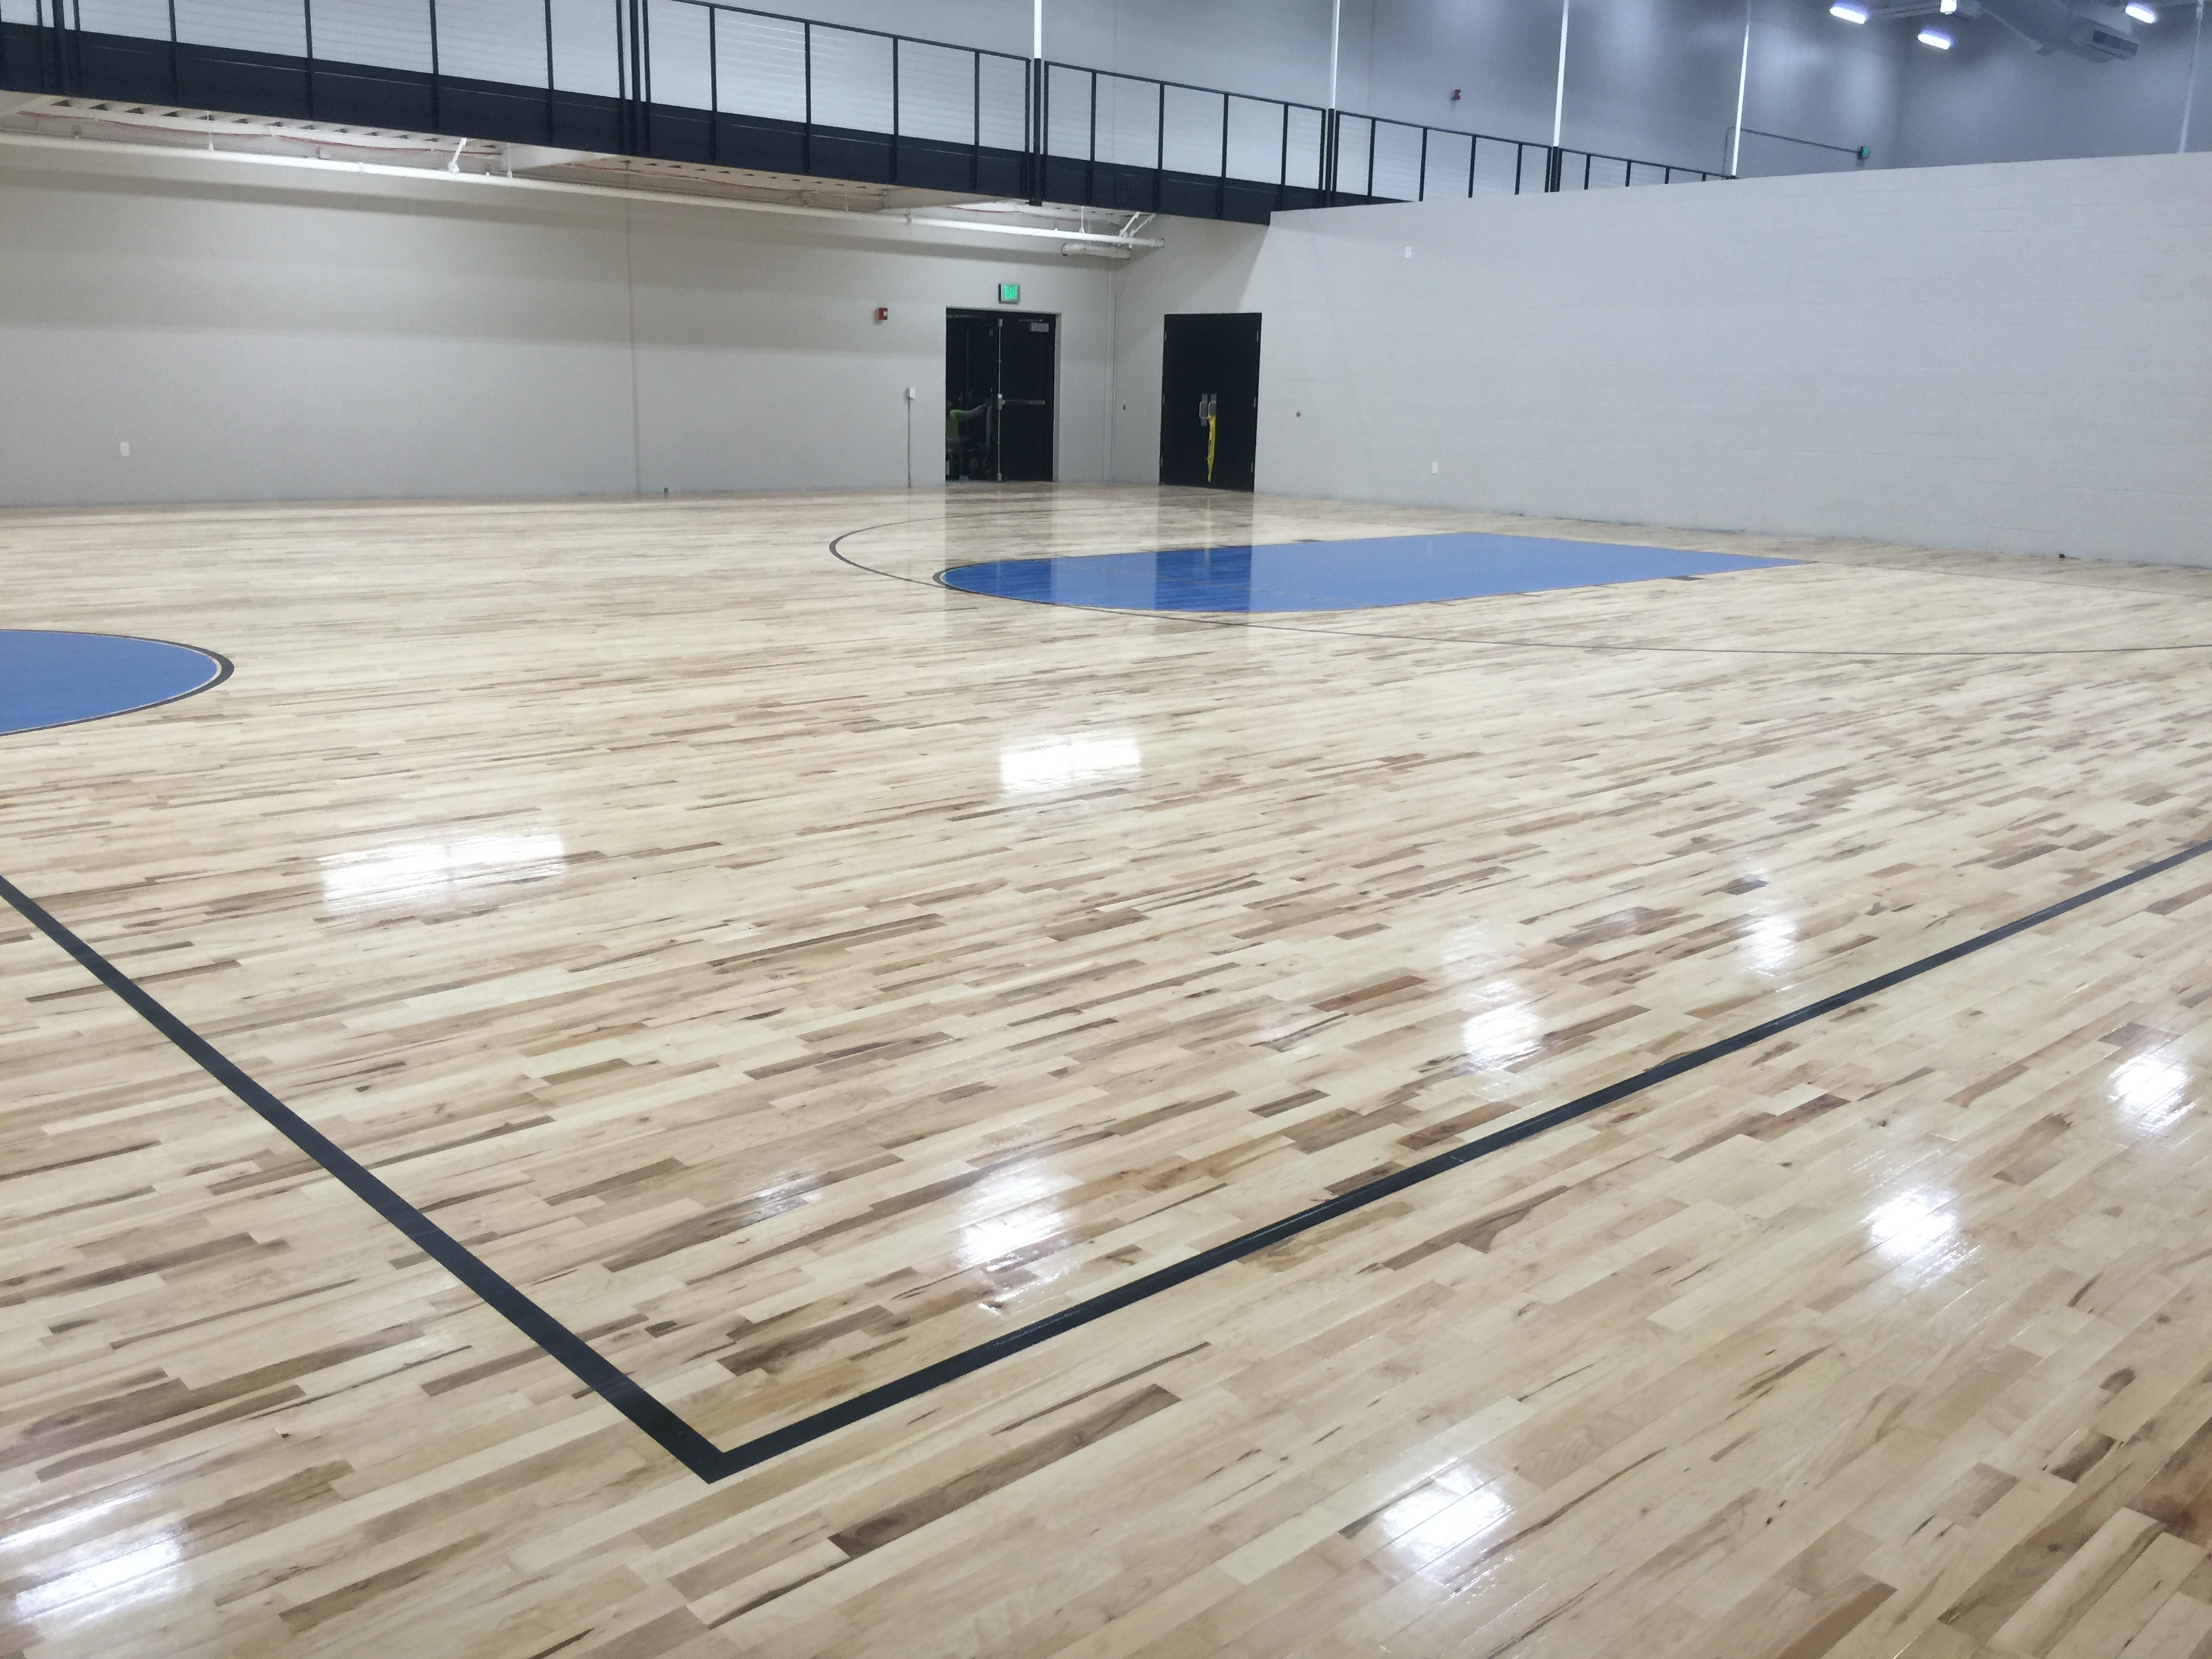 Basketball Court at the McKendree MetroRecPlex